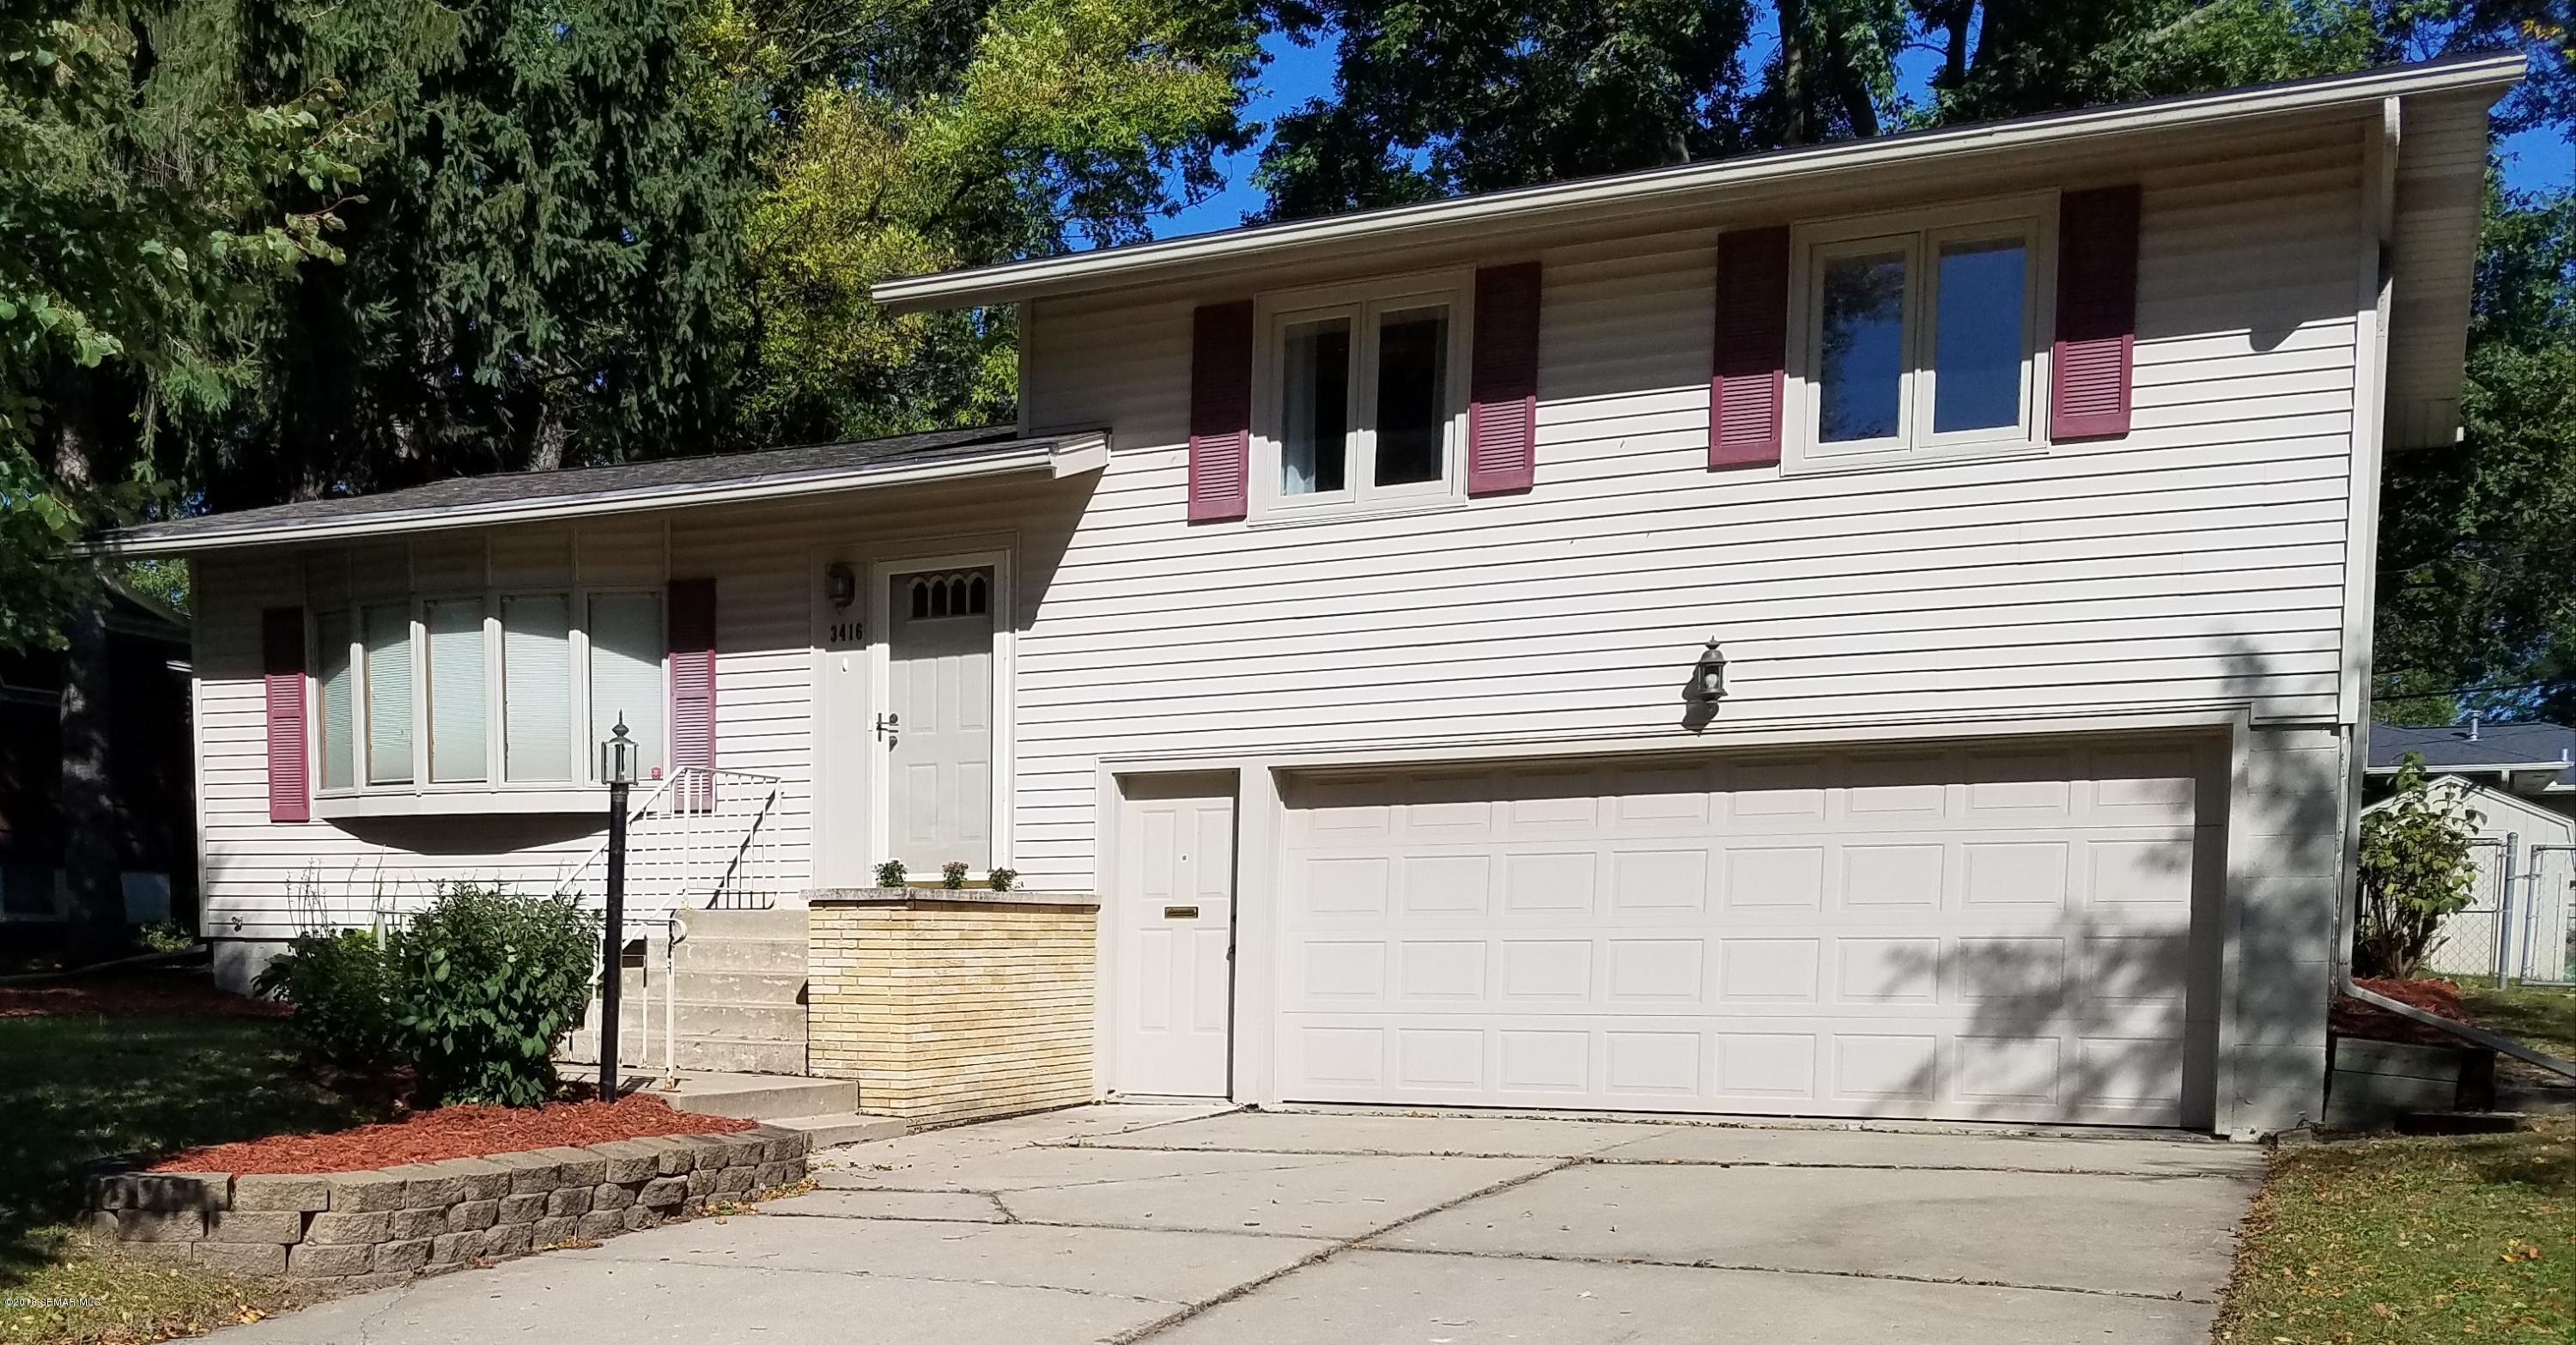 3416 20th,Rochester,Minnesota 55901,3 Bedrooms Bedrooms,2 BathroomsBathrooms,Single family residence,20th,4091420